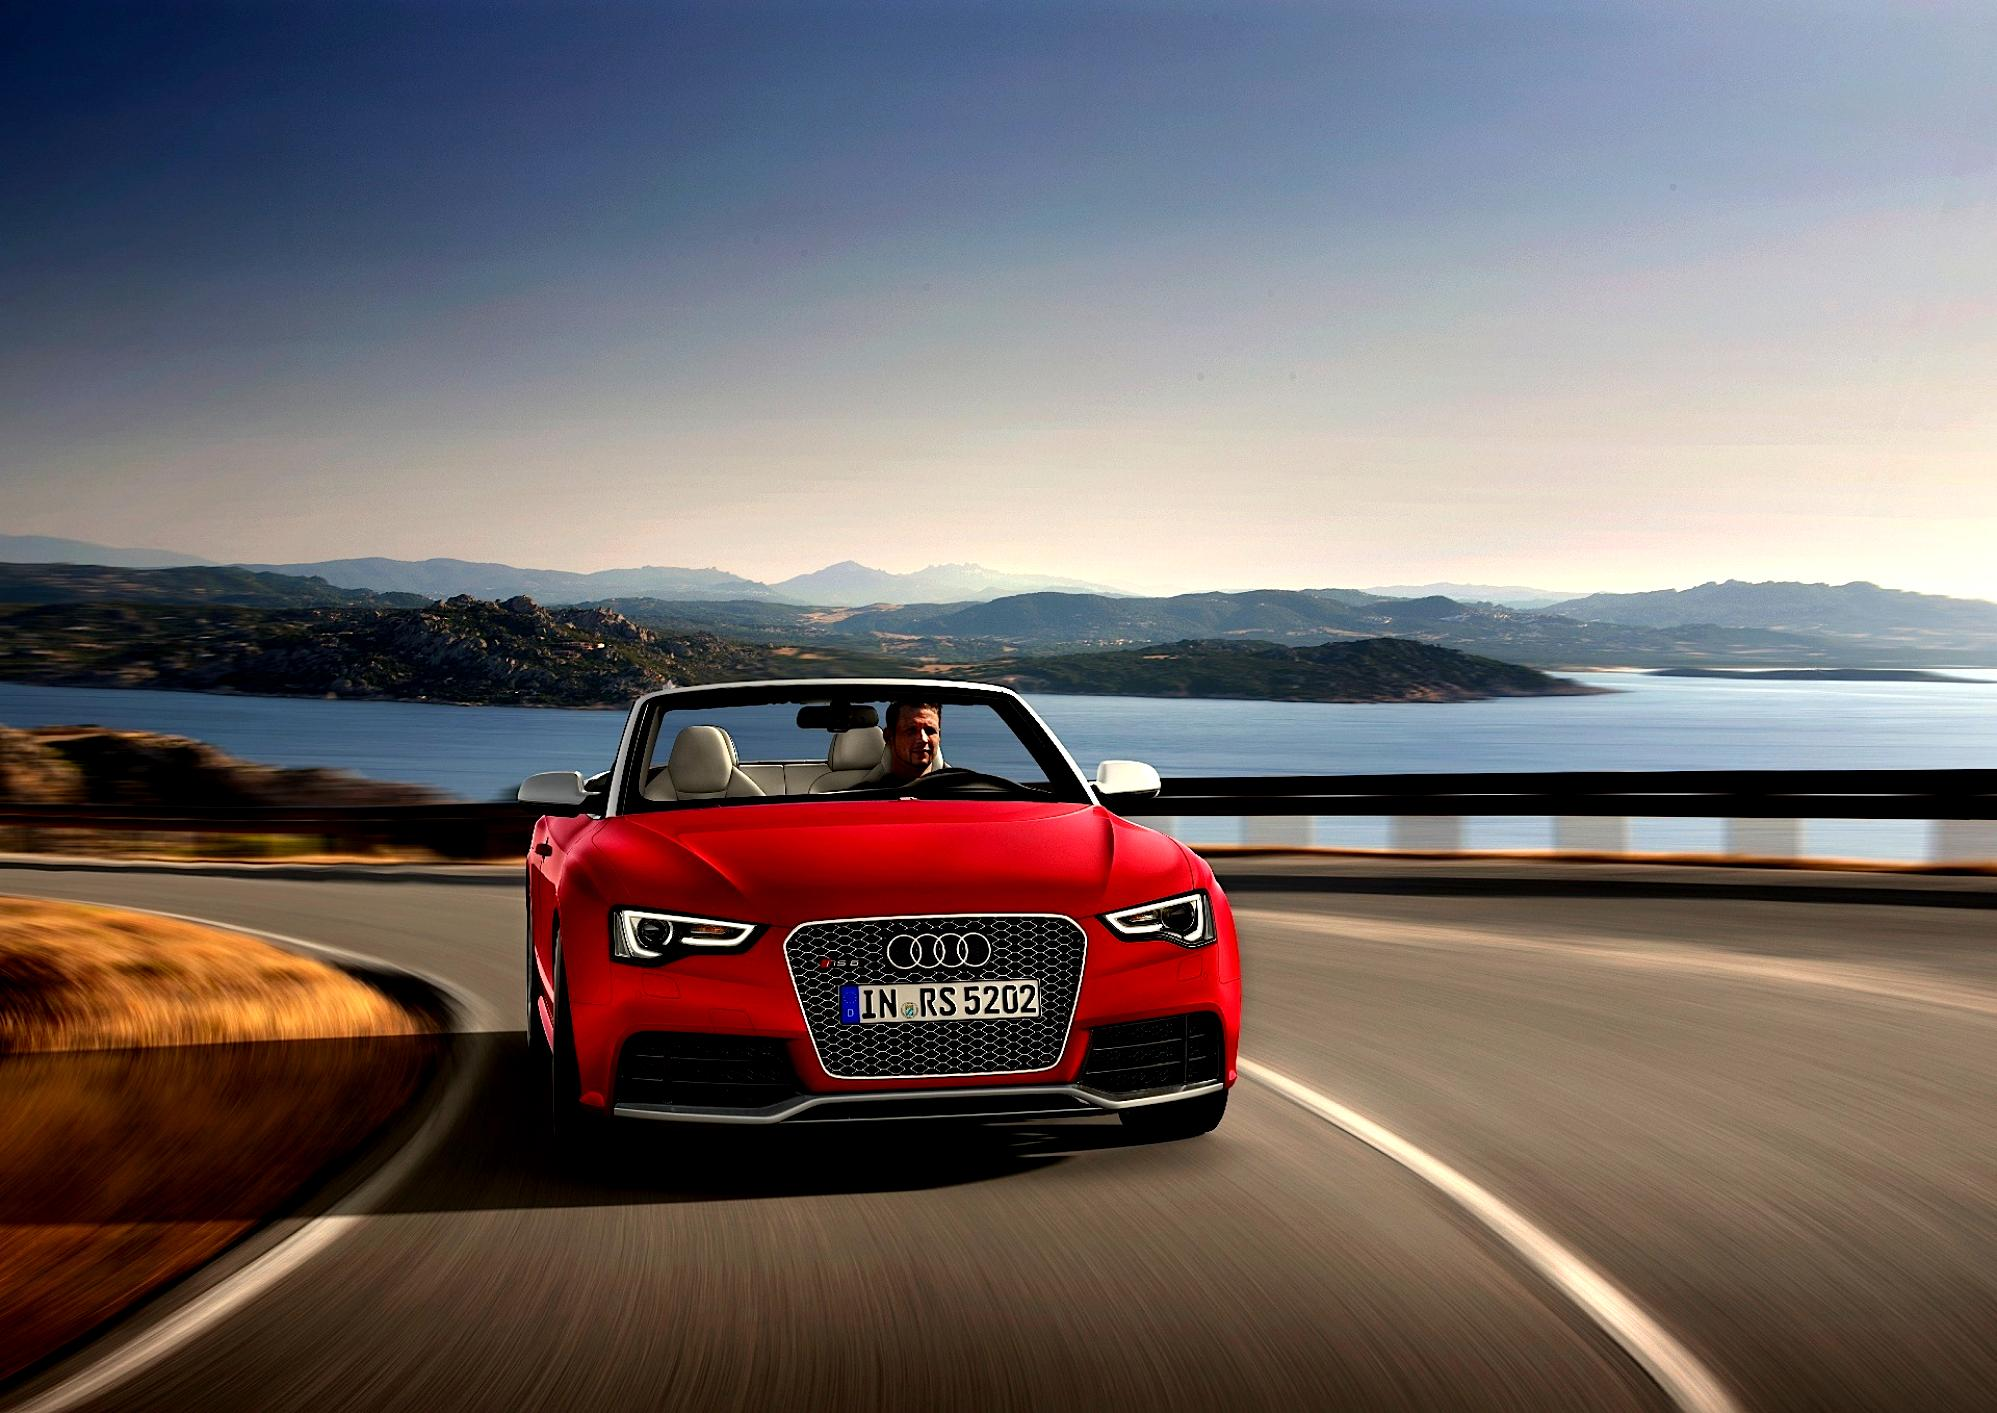 Audi RS5 Cabriolet 2013 #46